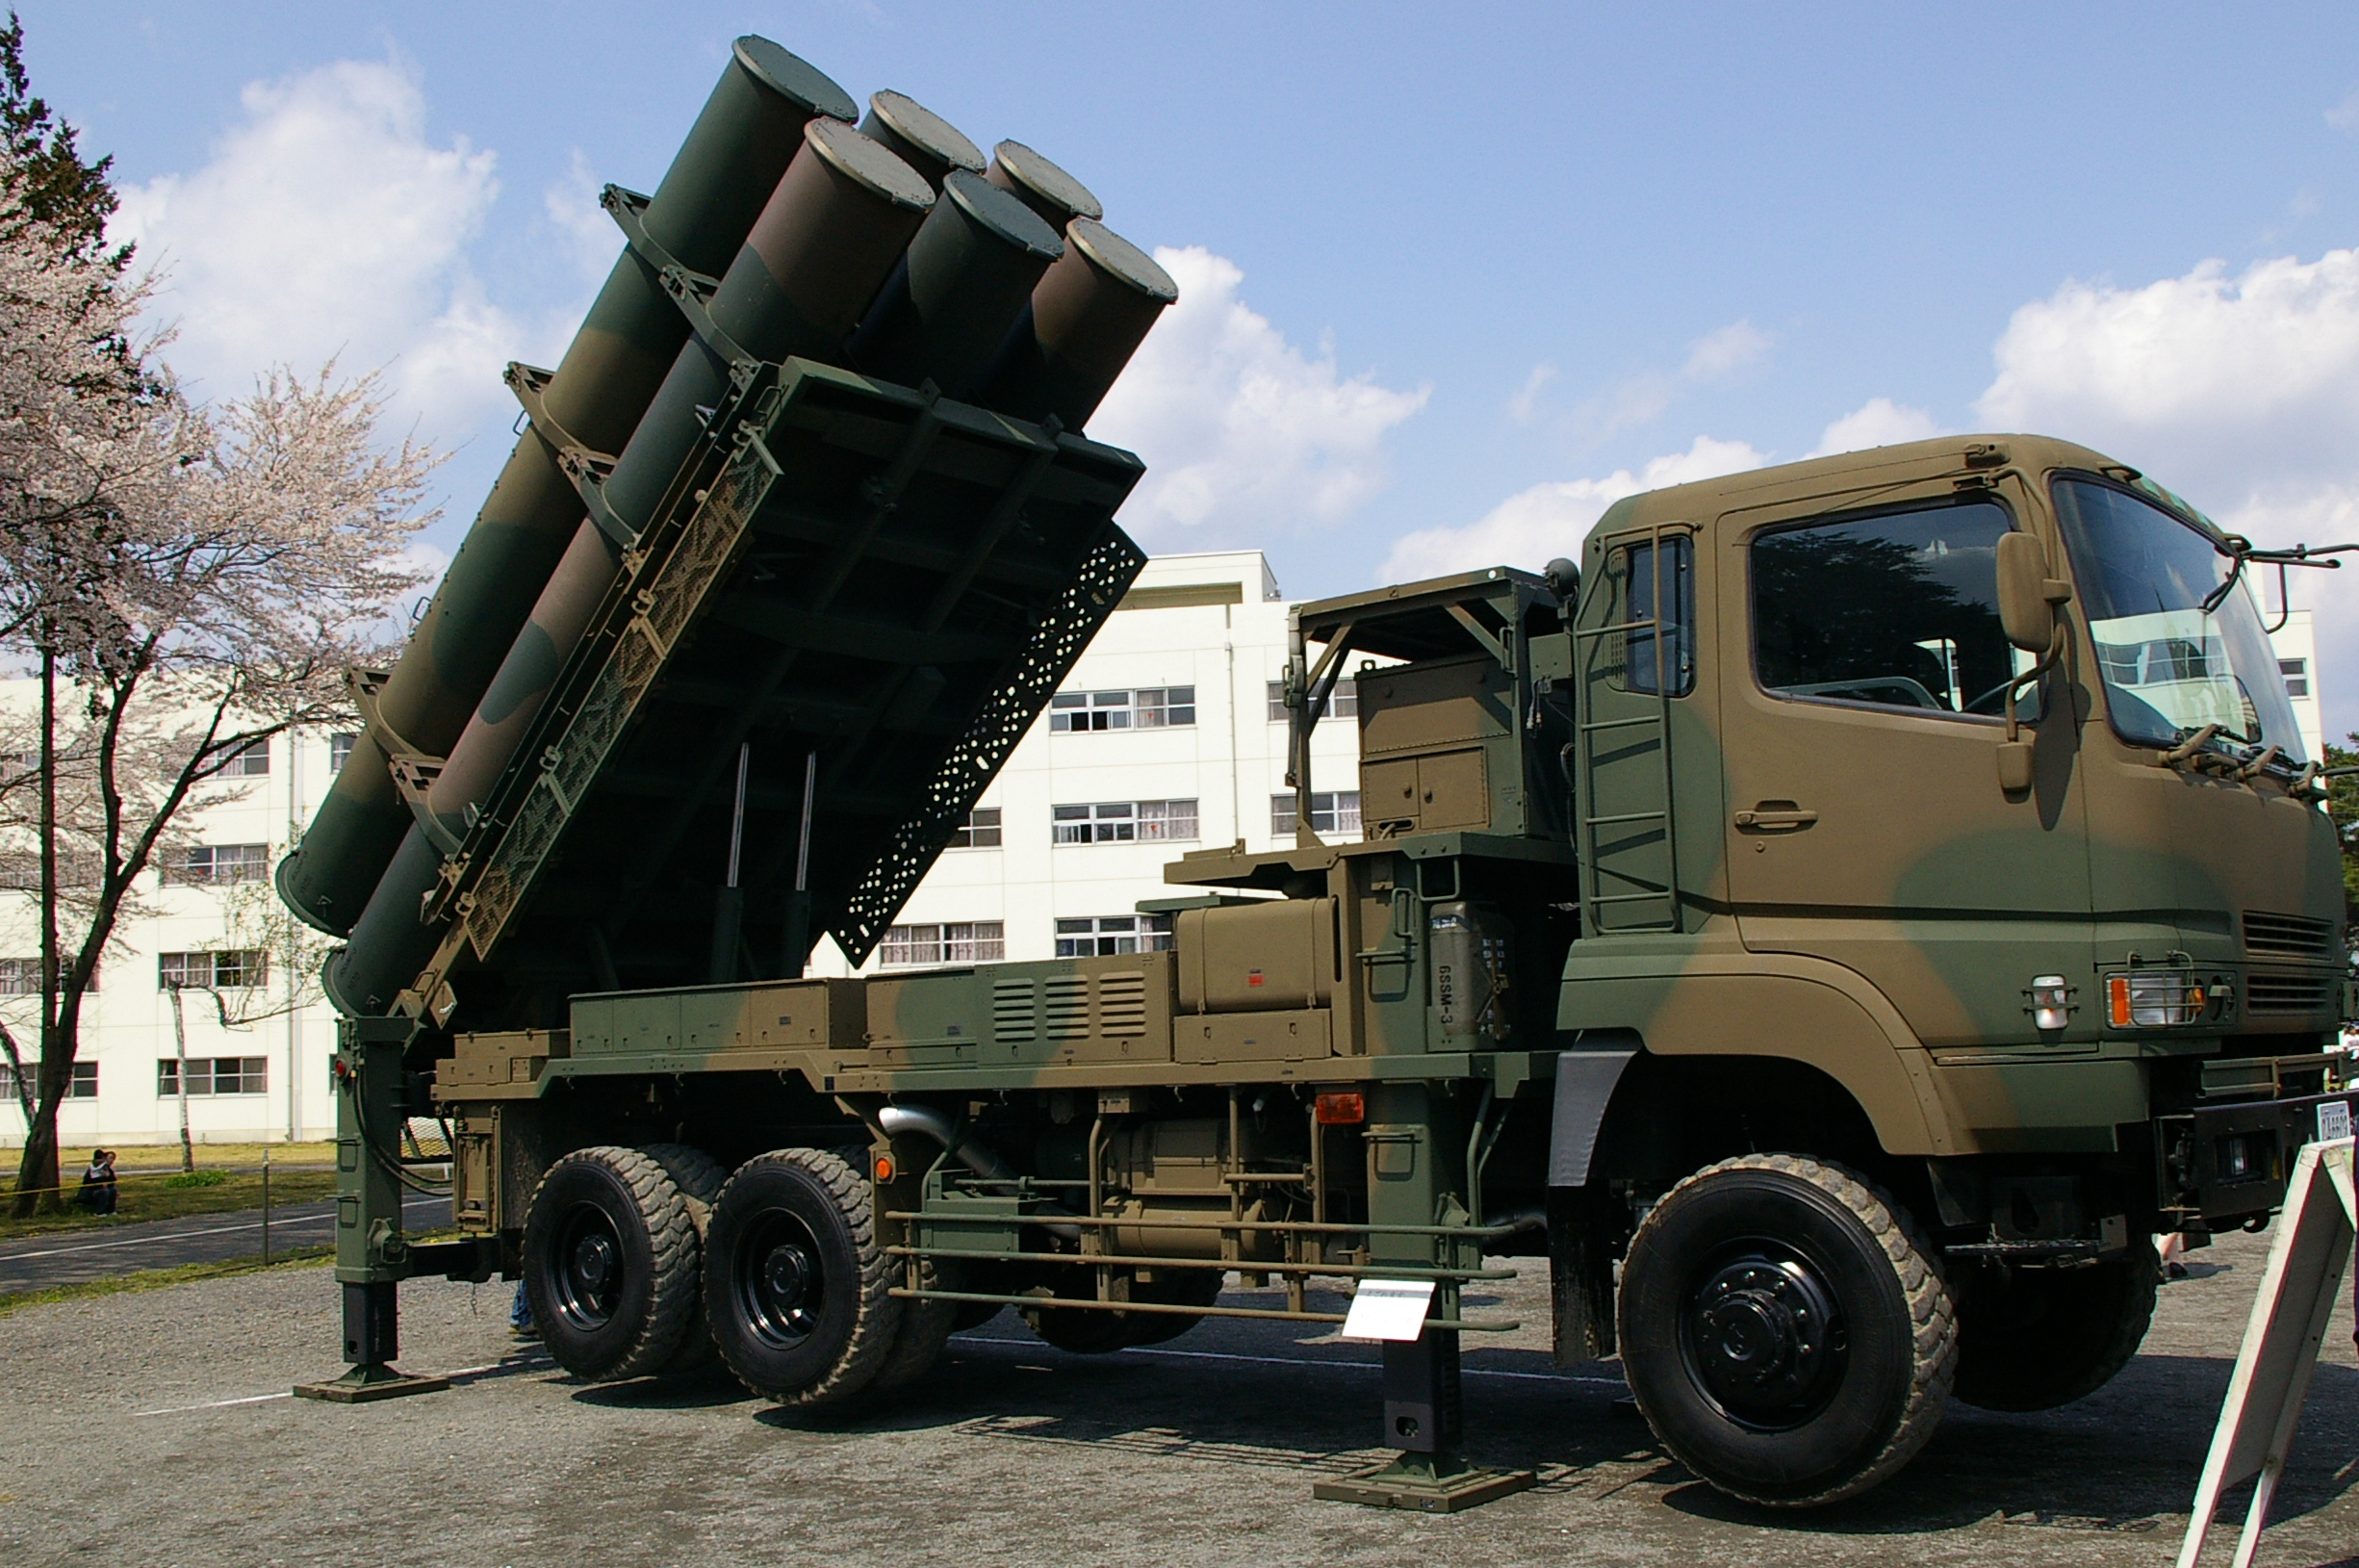 SSM: Type 88 Surface-to-Ship Missile